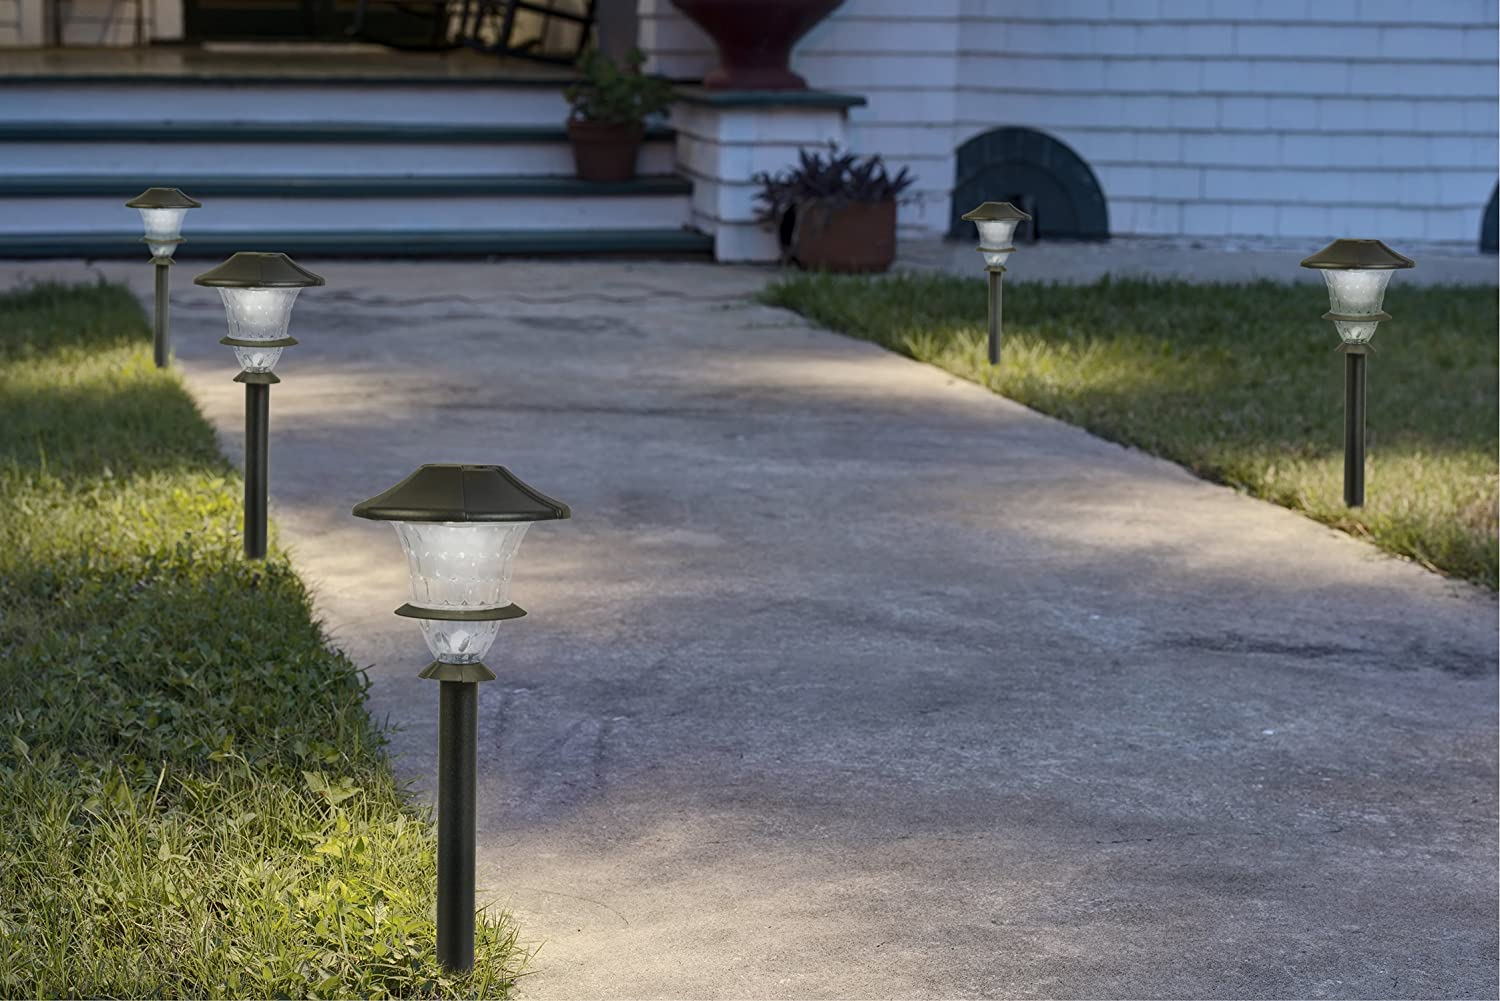 Paradise By Sterno Home Low Voltage Cast Aluminum 0 3w Led Path Light Kit 6 Pack Mimbarschool Com Ng